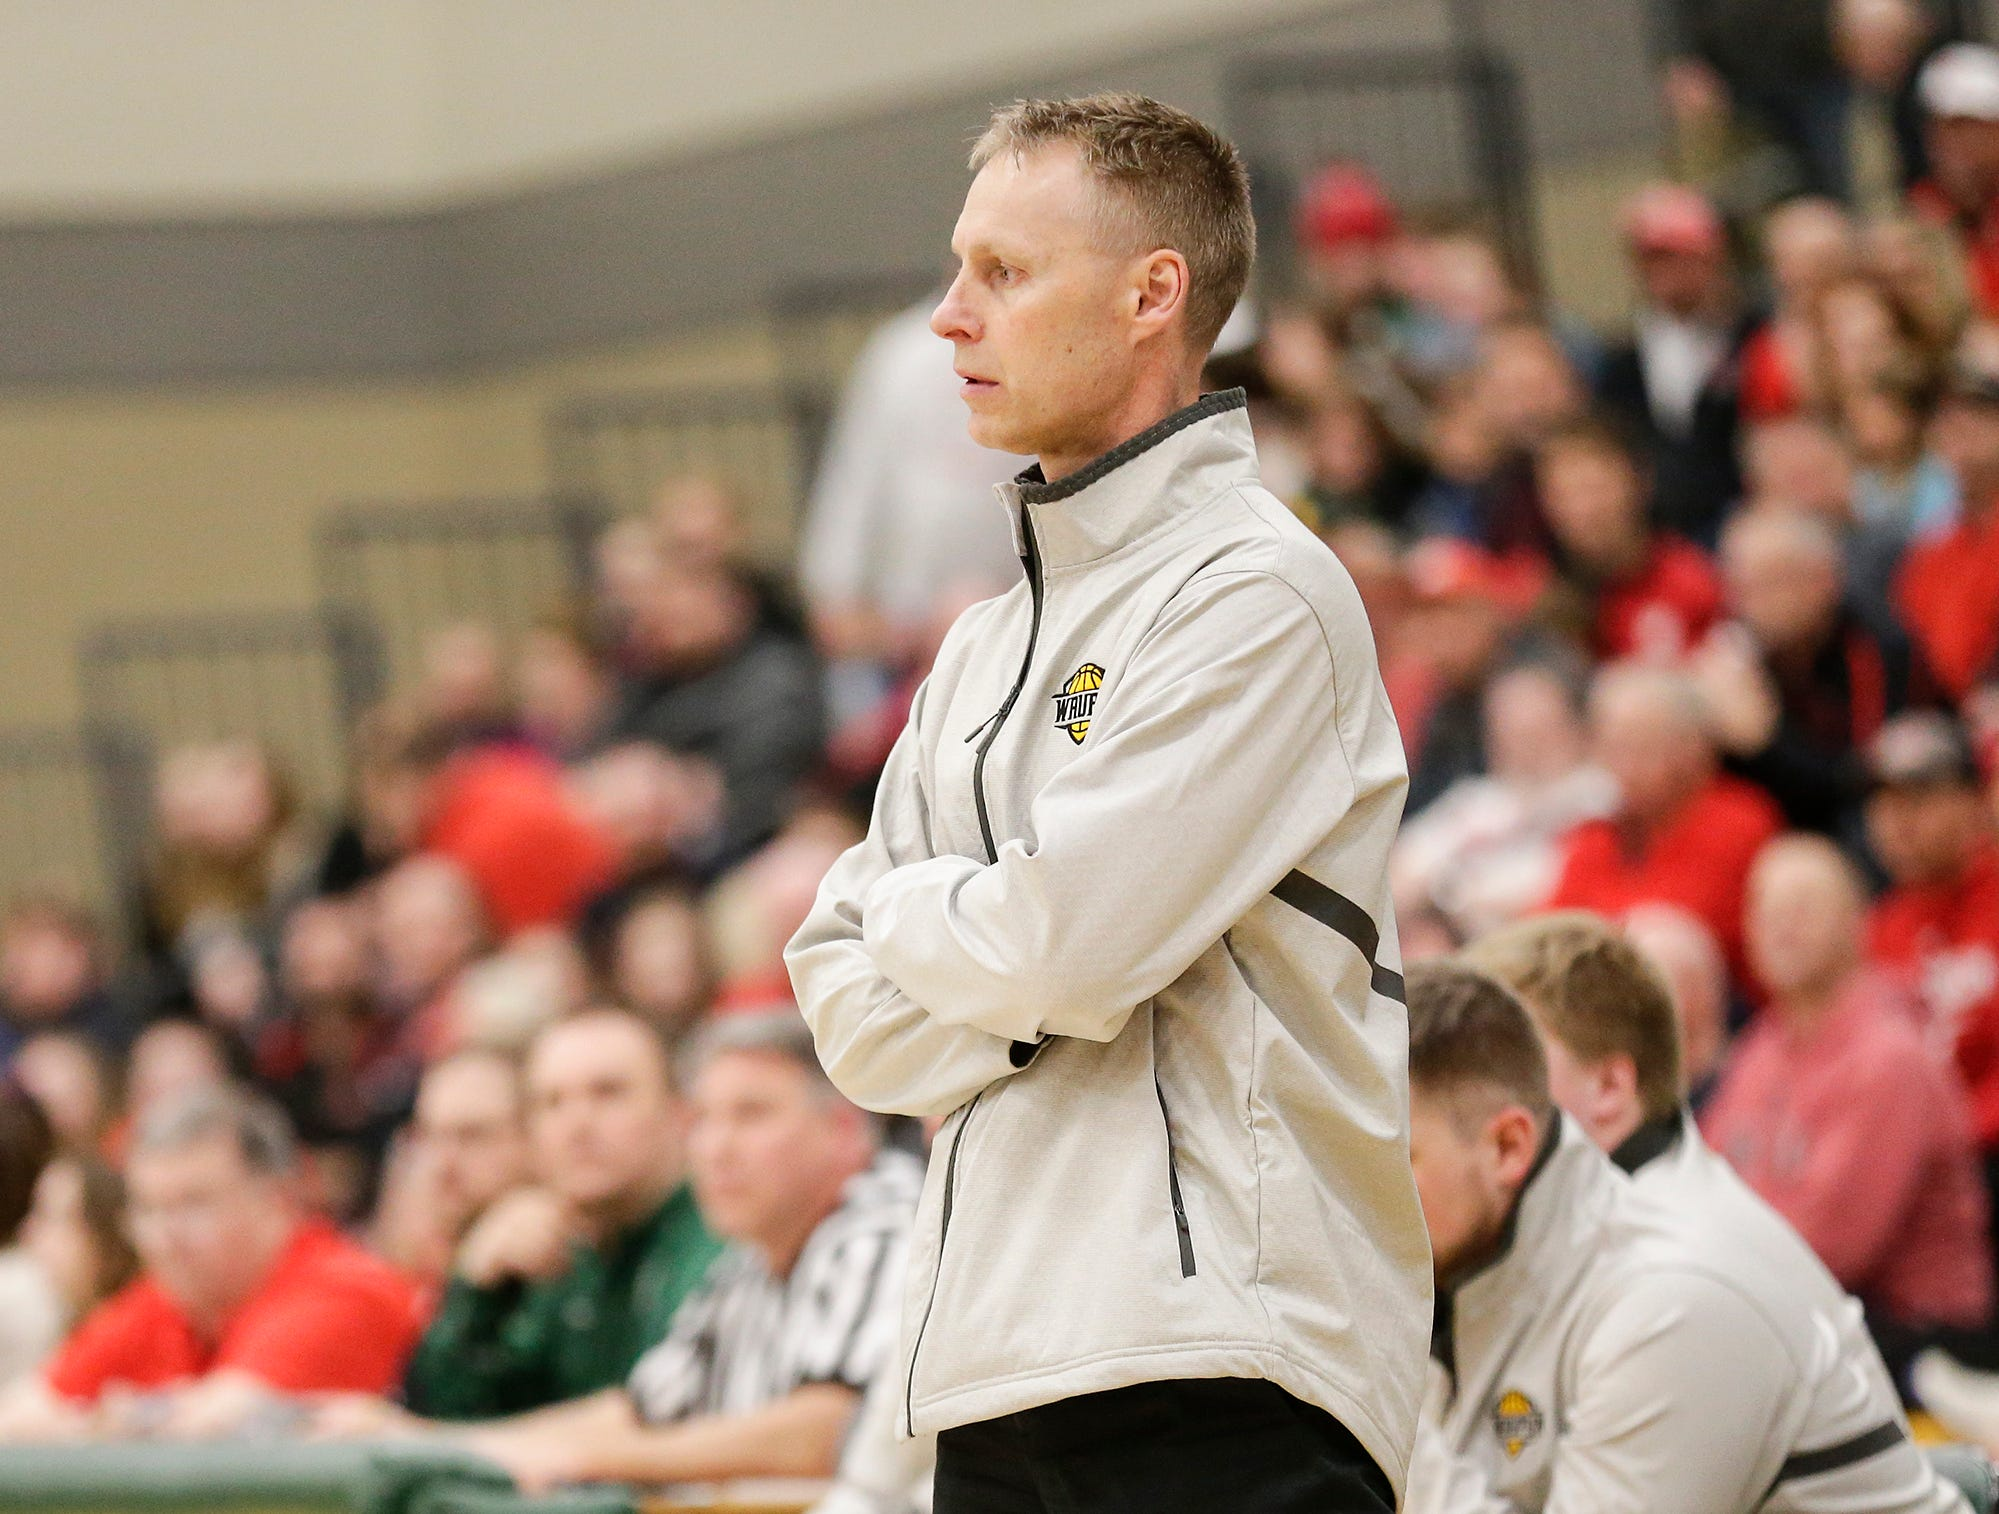 Waupun High School boys basketball coach Dan Domask watches his team play against Columbus High School during their WIAA division 3 sectional semi-final game Thursday, March 7, 2019 in Beaver Dam, Wis. Waupun won the game 79-36. Doug Raflik/USA TODAY NETWORK-Wisconsin